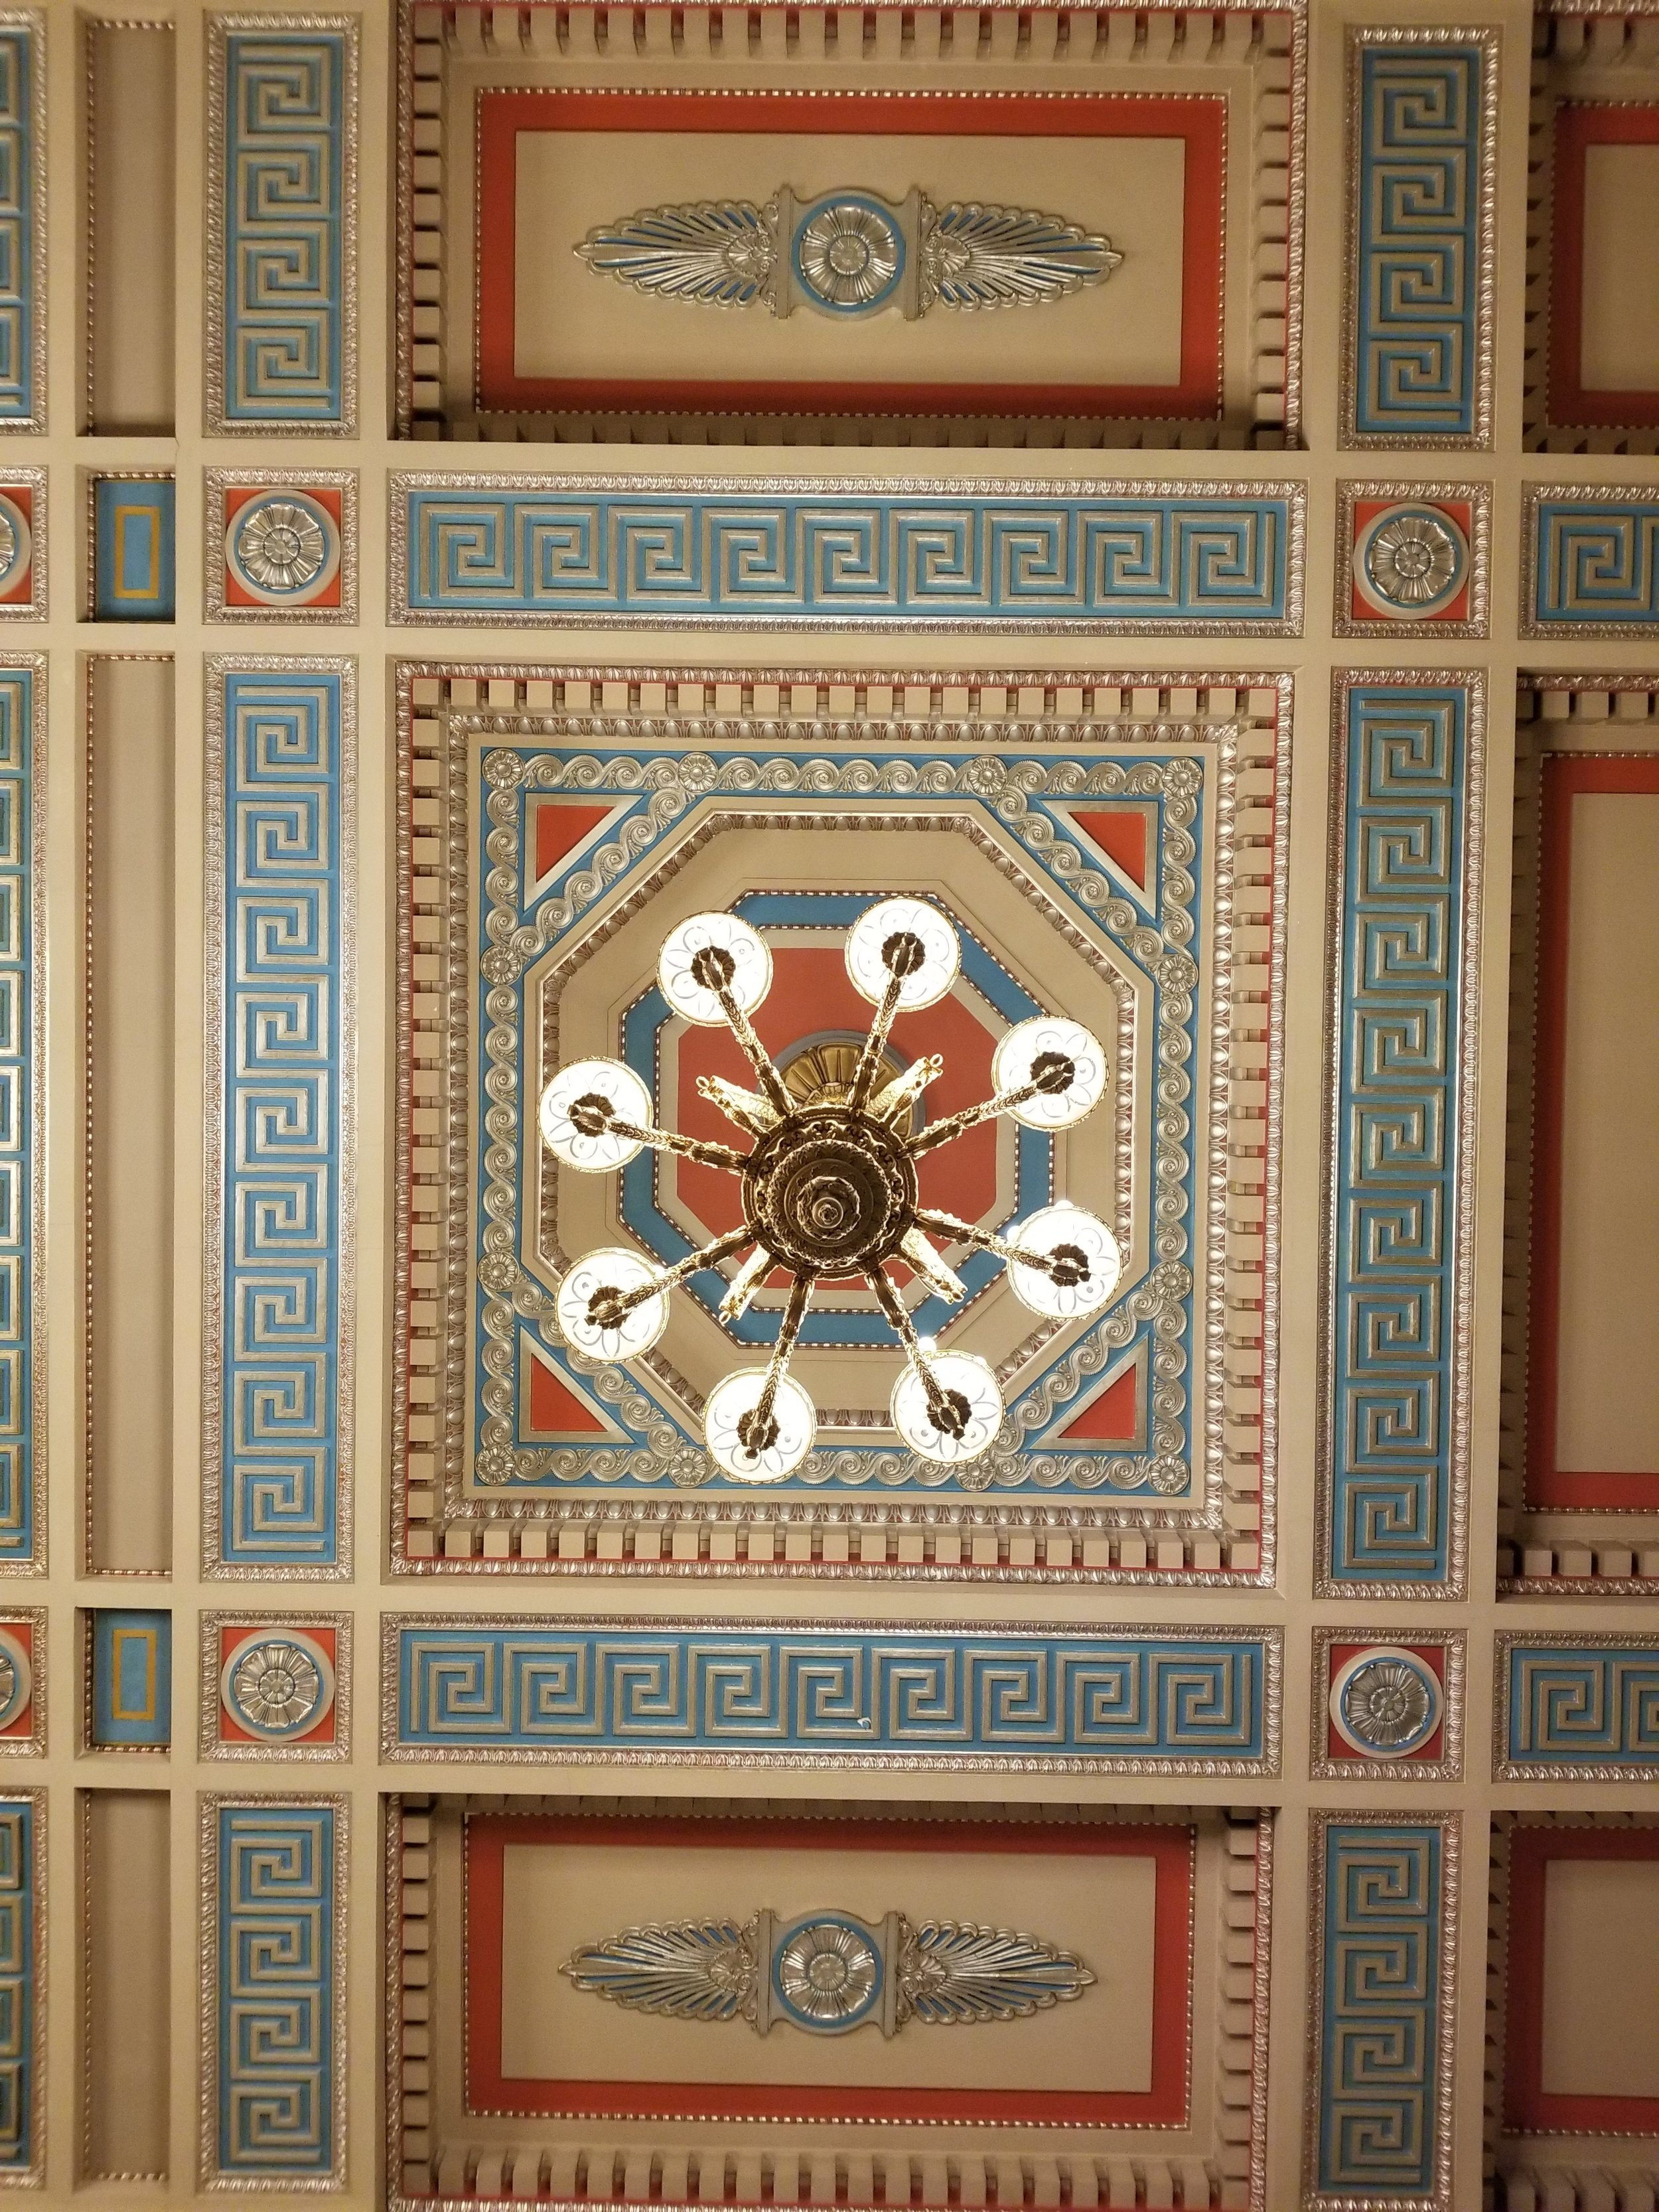 While visiting Stormont, the Parliament building of Northern Ireland, I highly recommend looking up. Throughout the building are beautiful patterns and carvings – on the ceiling, on the walls, along the pillars – really just about everywhere. Photo credit: Morrill, 2019